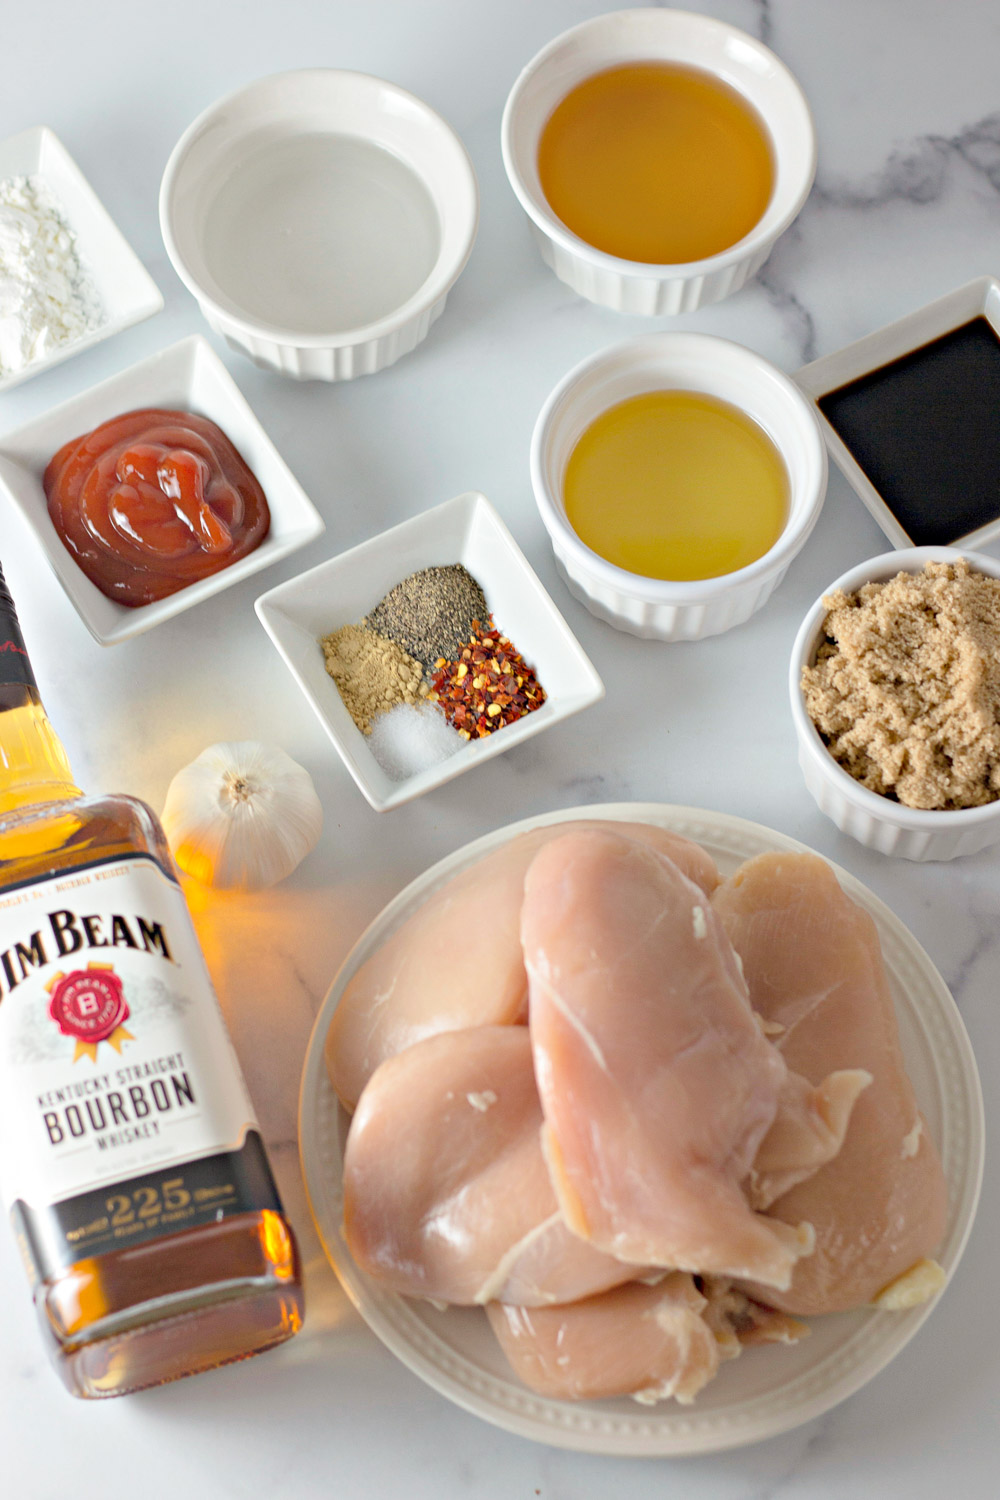 ingredients for bourbon chicken measured out in bowls